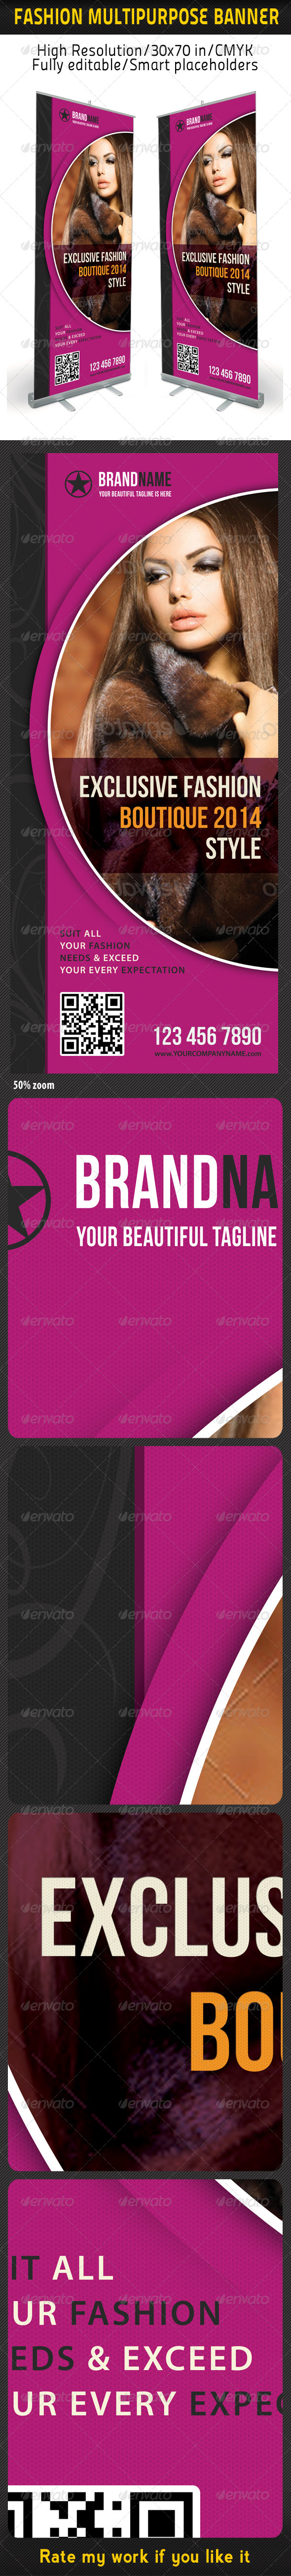 Fashion Multipurpose Banner Template 19 - Signage Print Templates